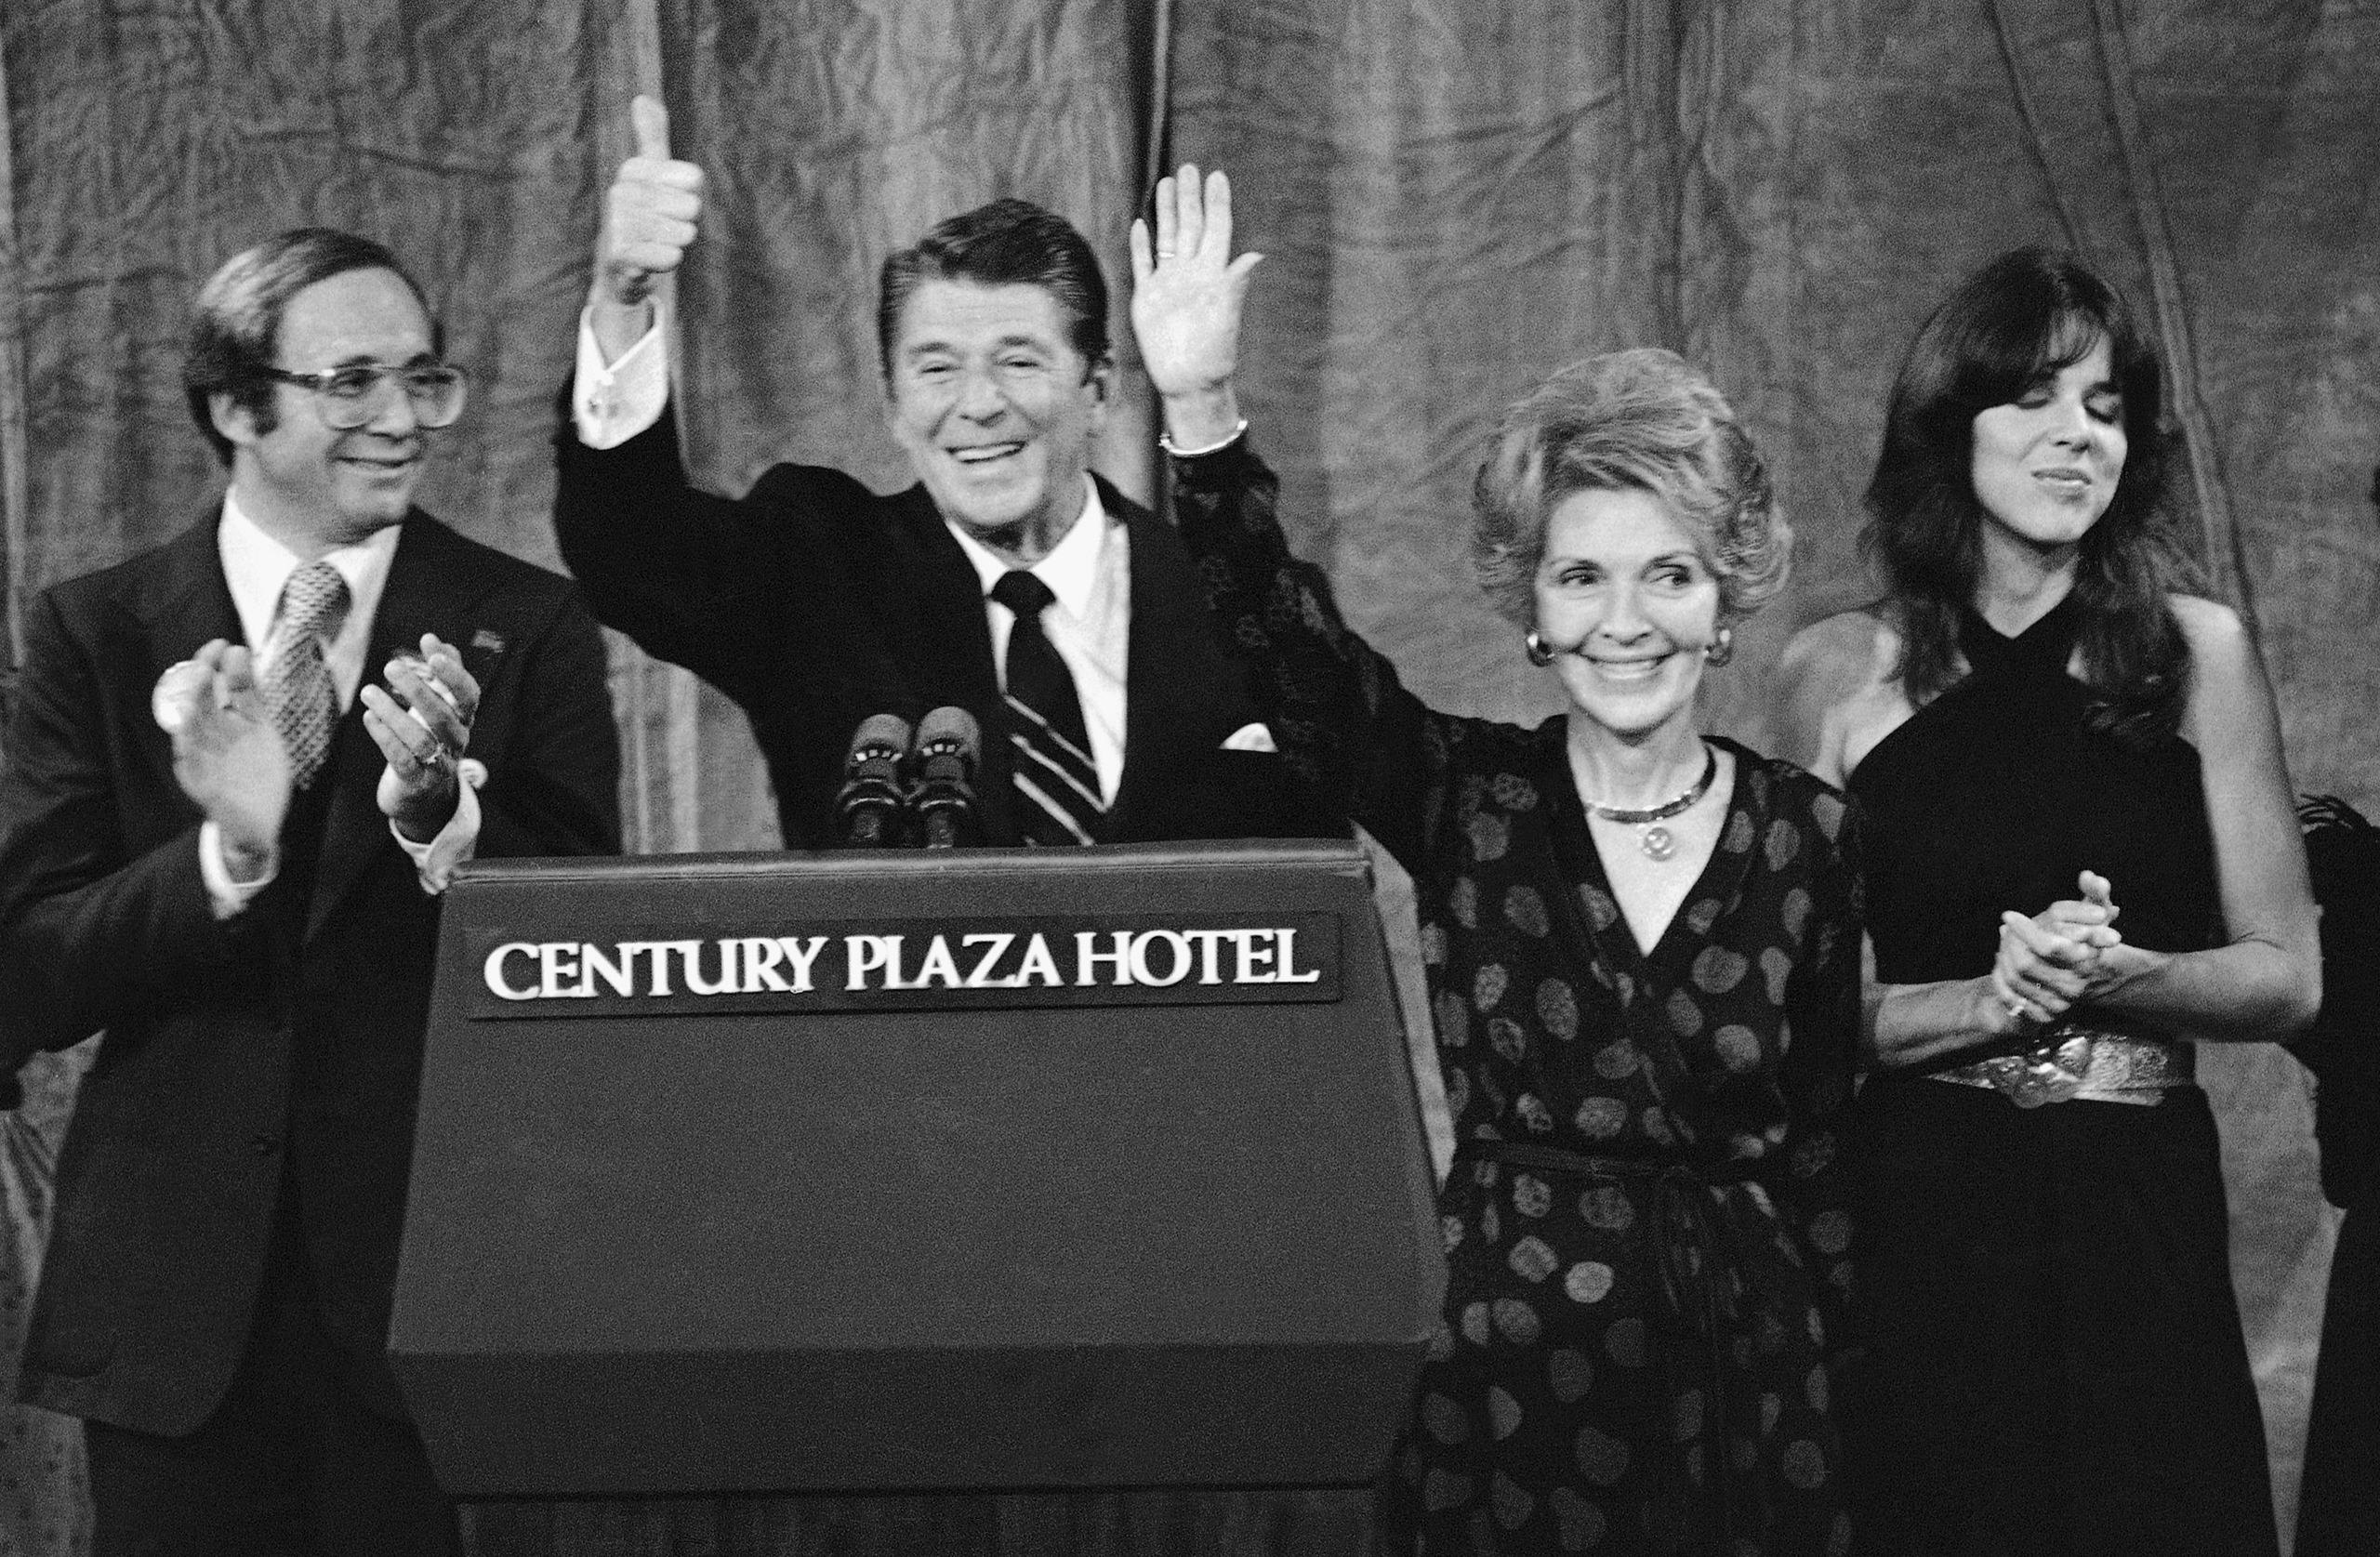 President-elect Ronald Reagan and his wife Nancy wave to supporters after speaking at his election night headquarters in Los Angeles, on Nov. 5, 1980. Reagan swept to an unusually lopsided win over President Jimmy Carter.